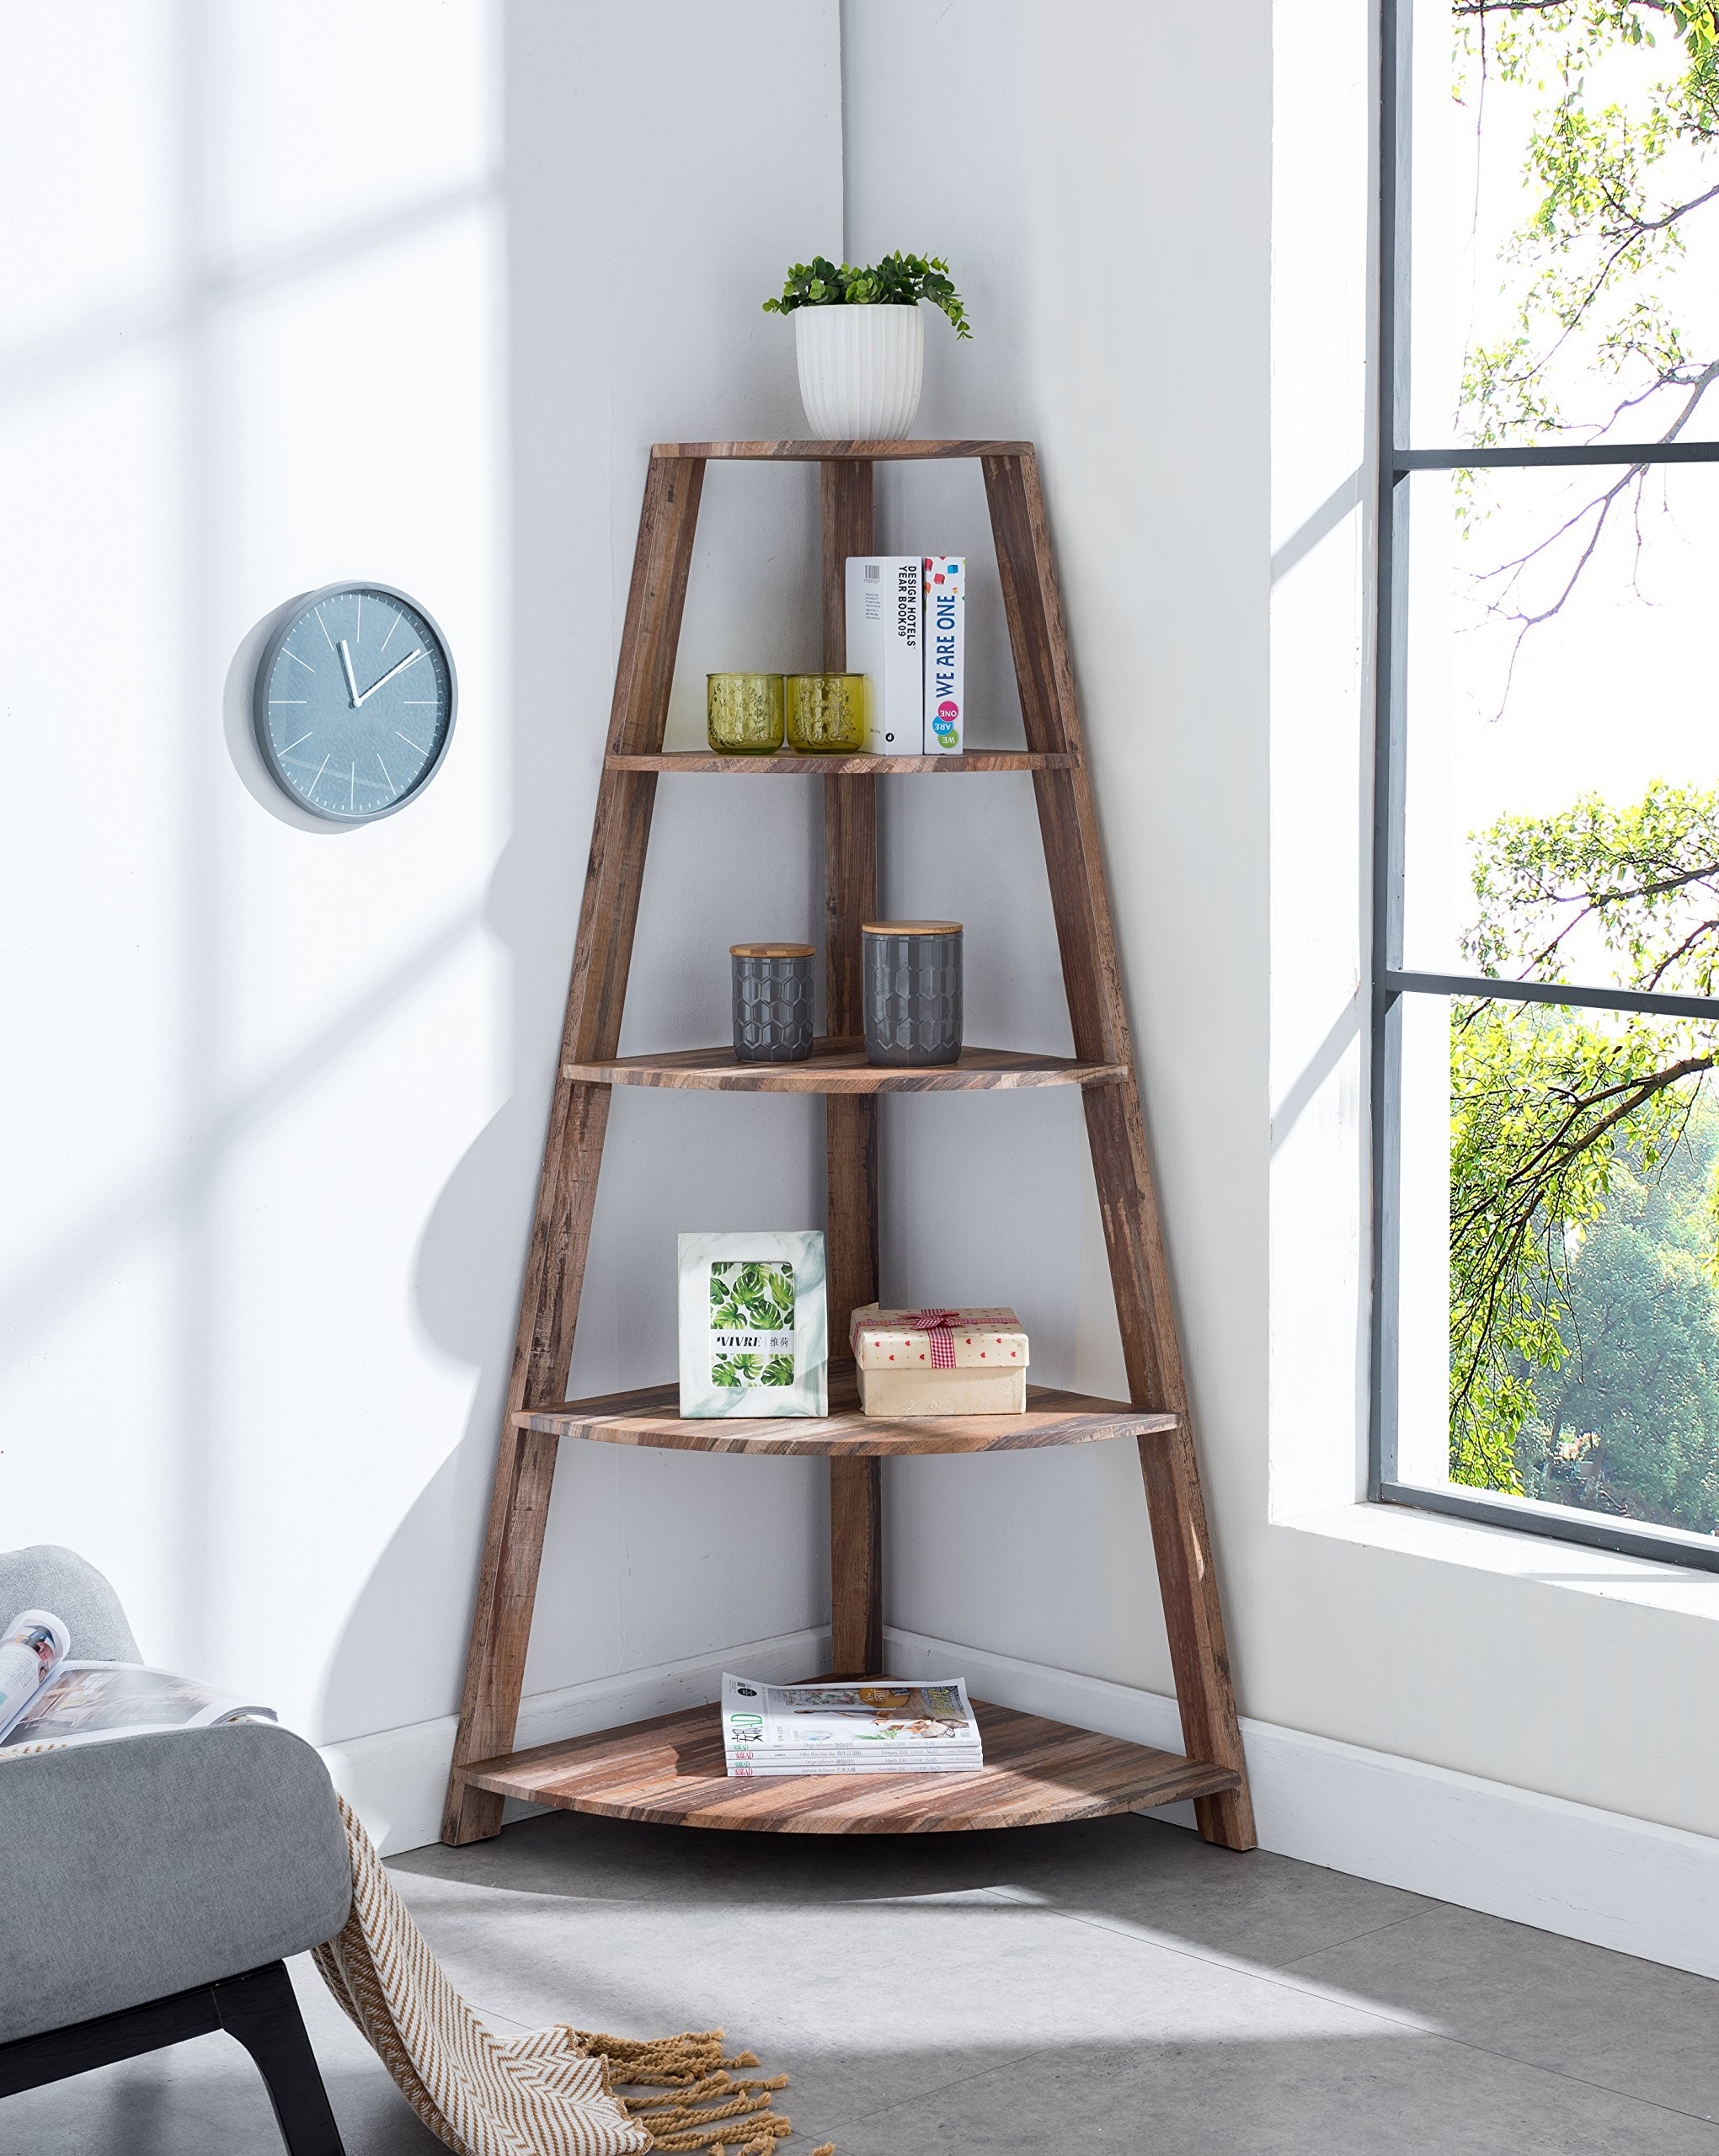 None Weathered Oak Finish Wood Wall Corner 5-Tier Bookshelf Bookcase Accent Etagere